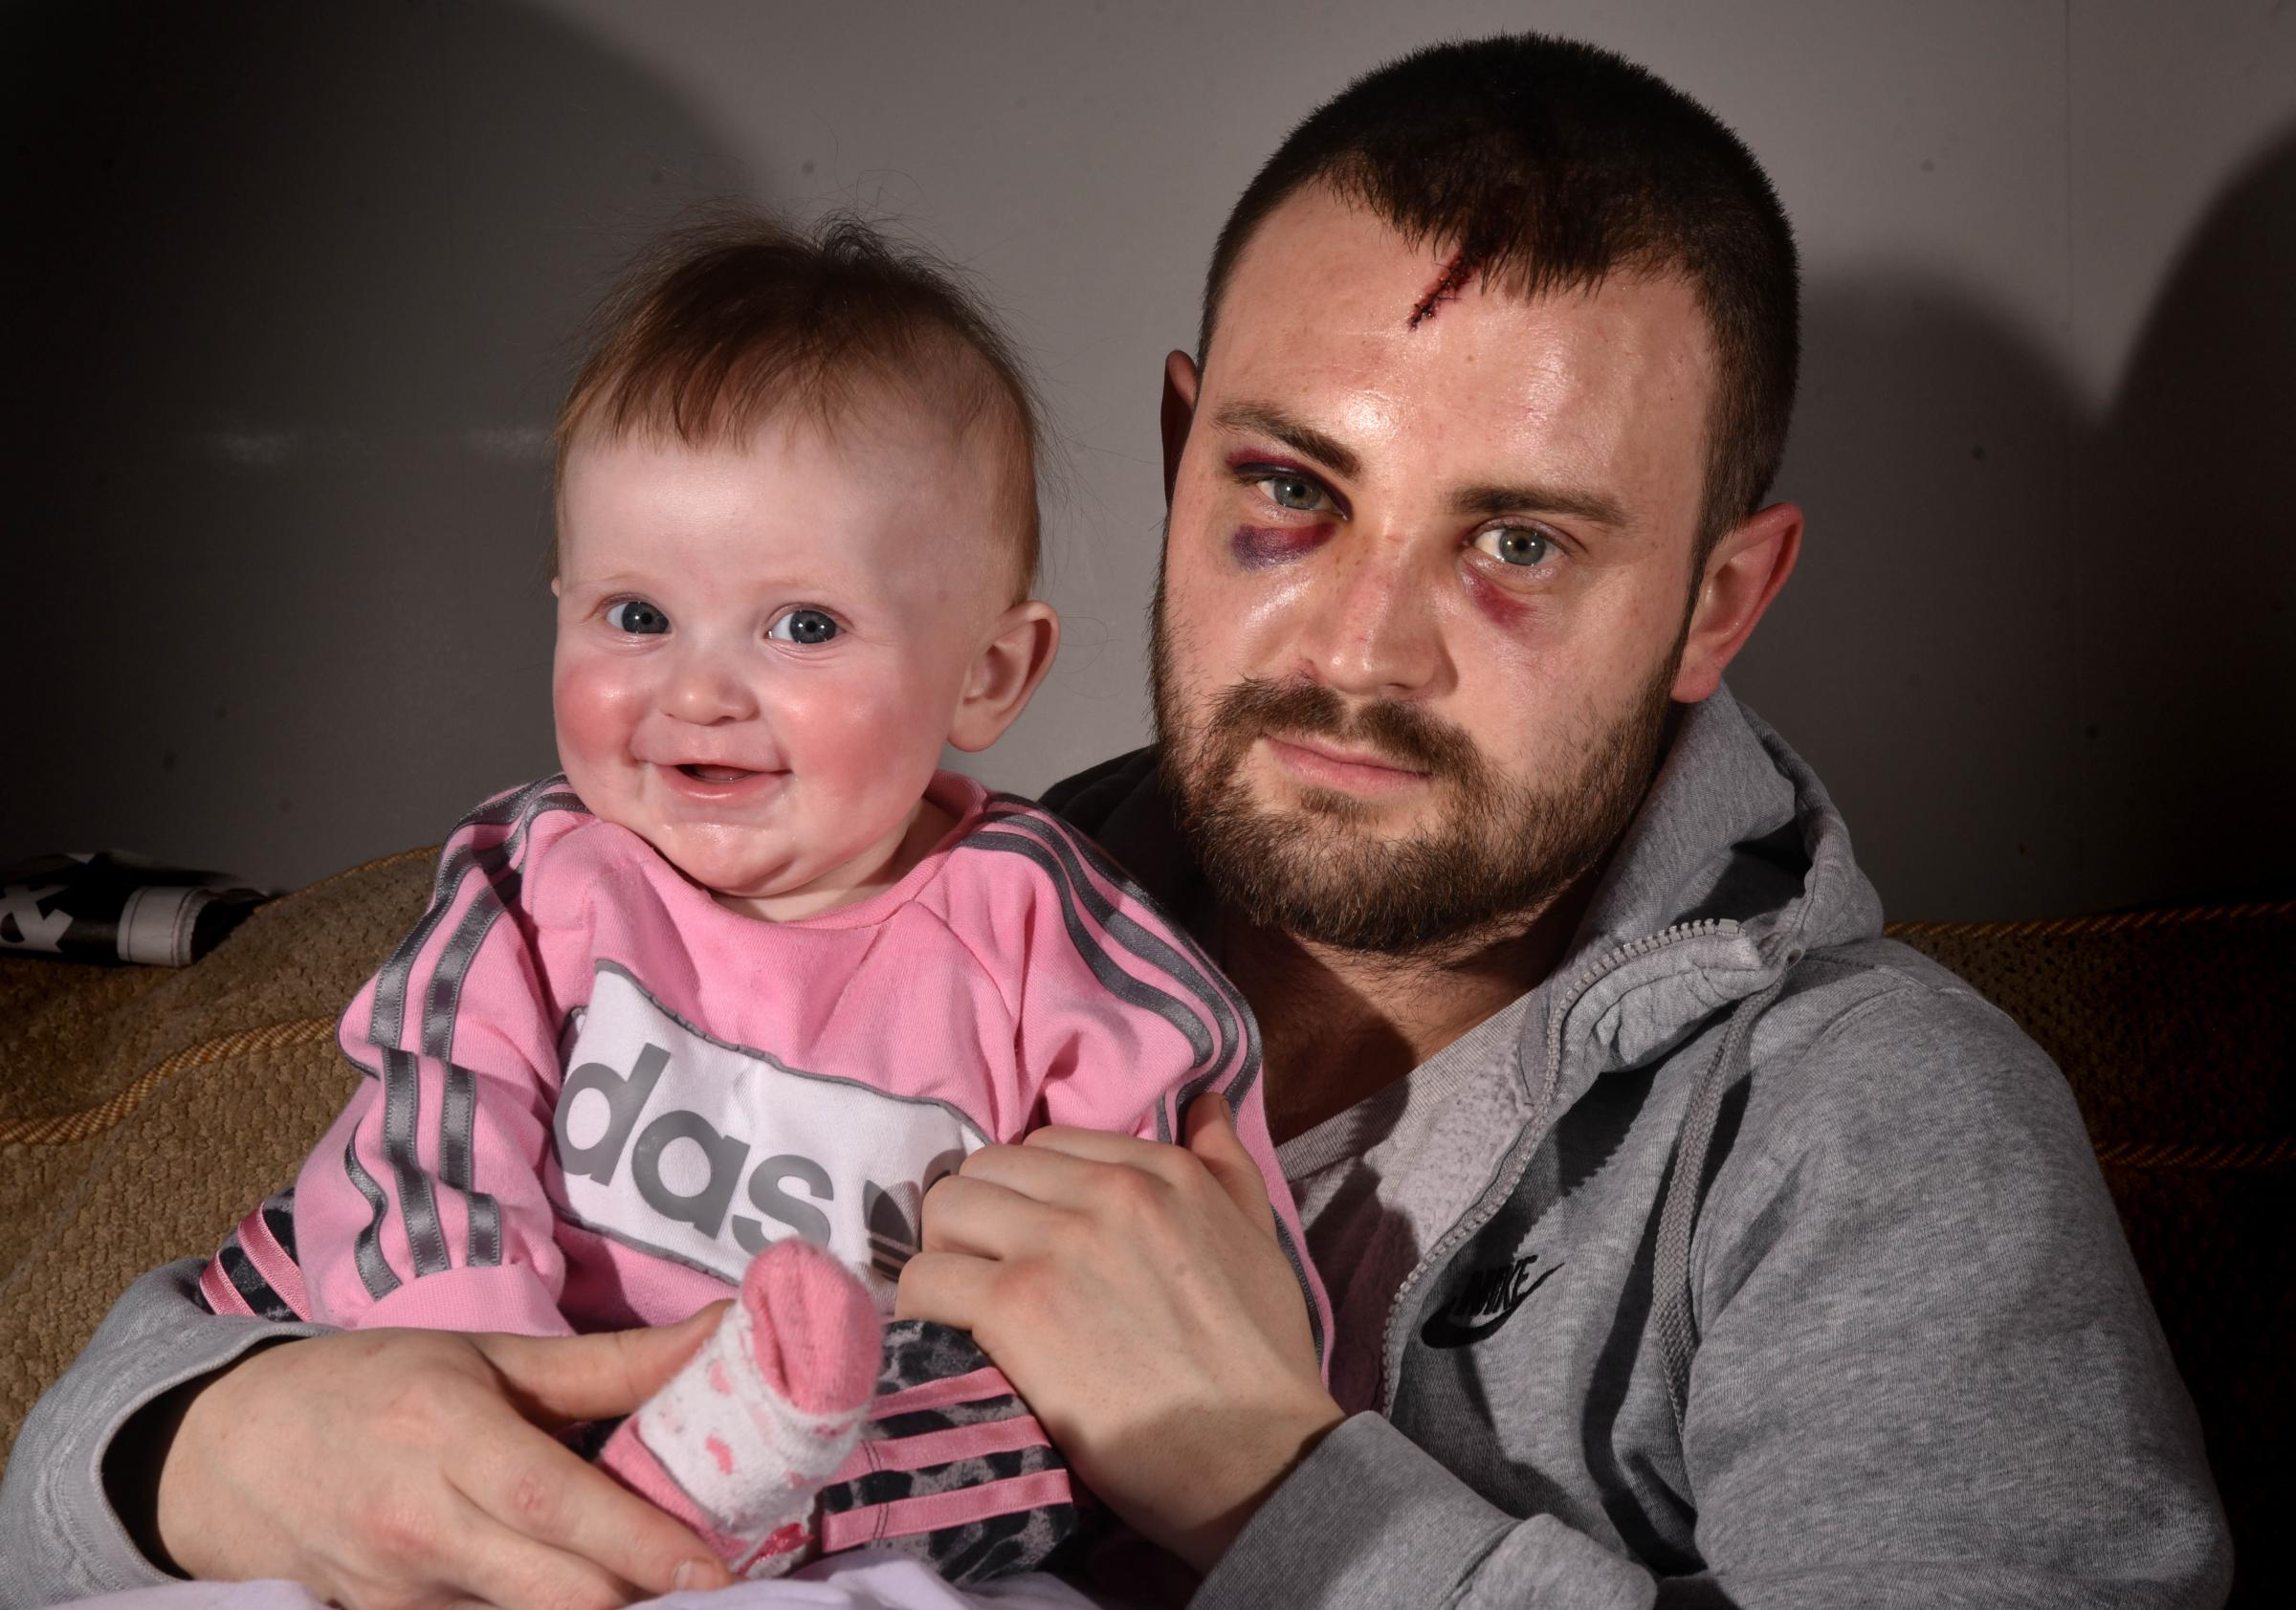 Jay Bailes was with his partner and six-month-old daughter Izabella (pictured) when he was attacked